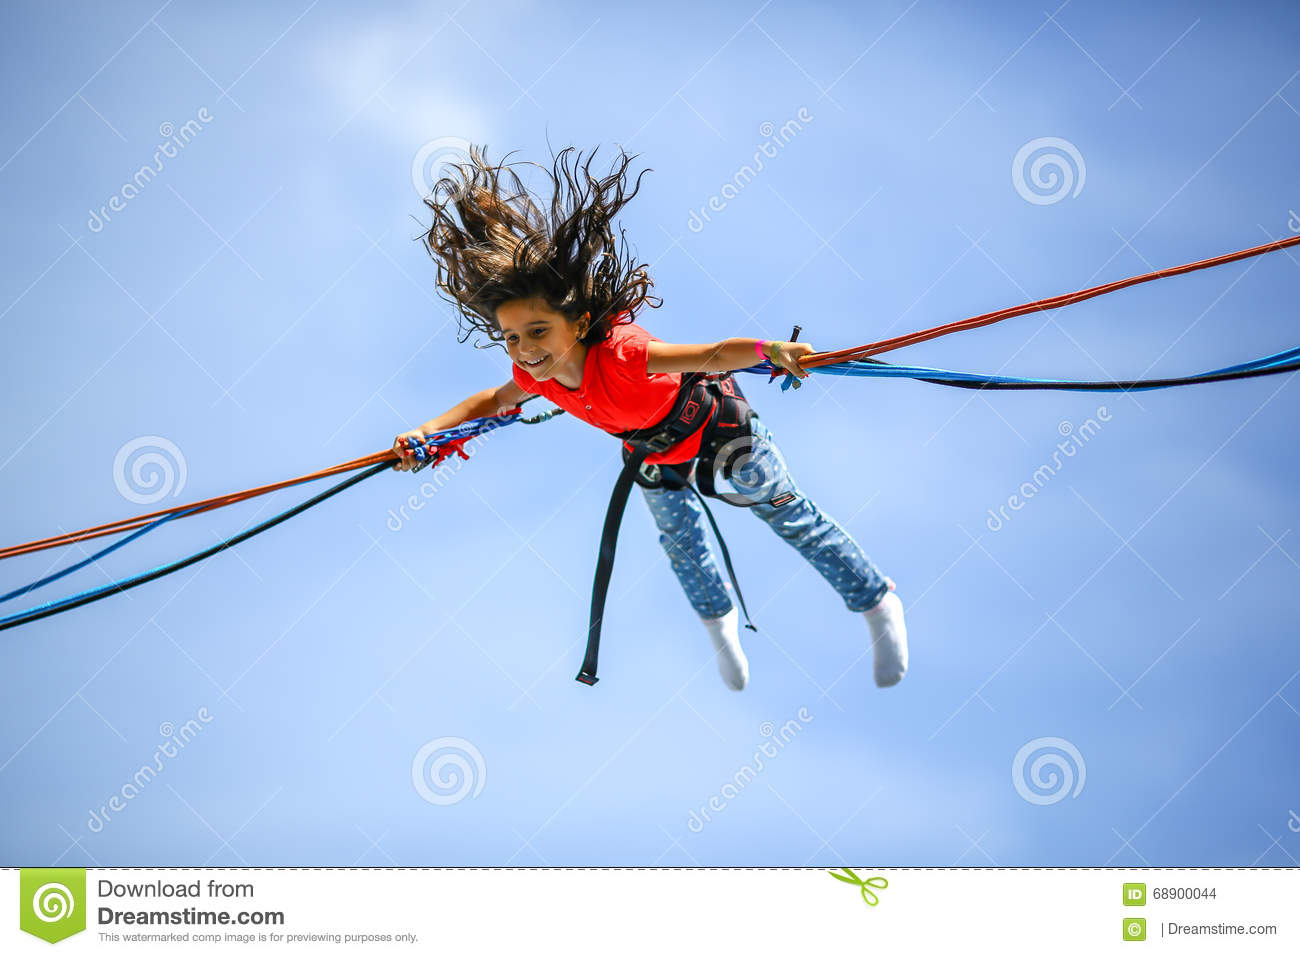 Starting Your Own Bungee Jumping Business